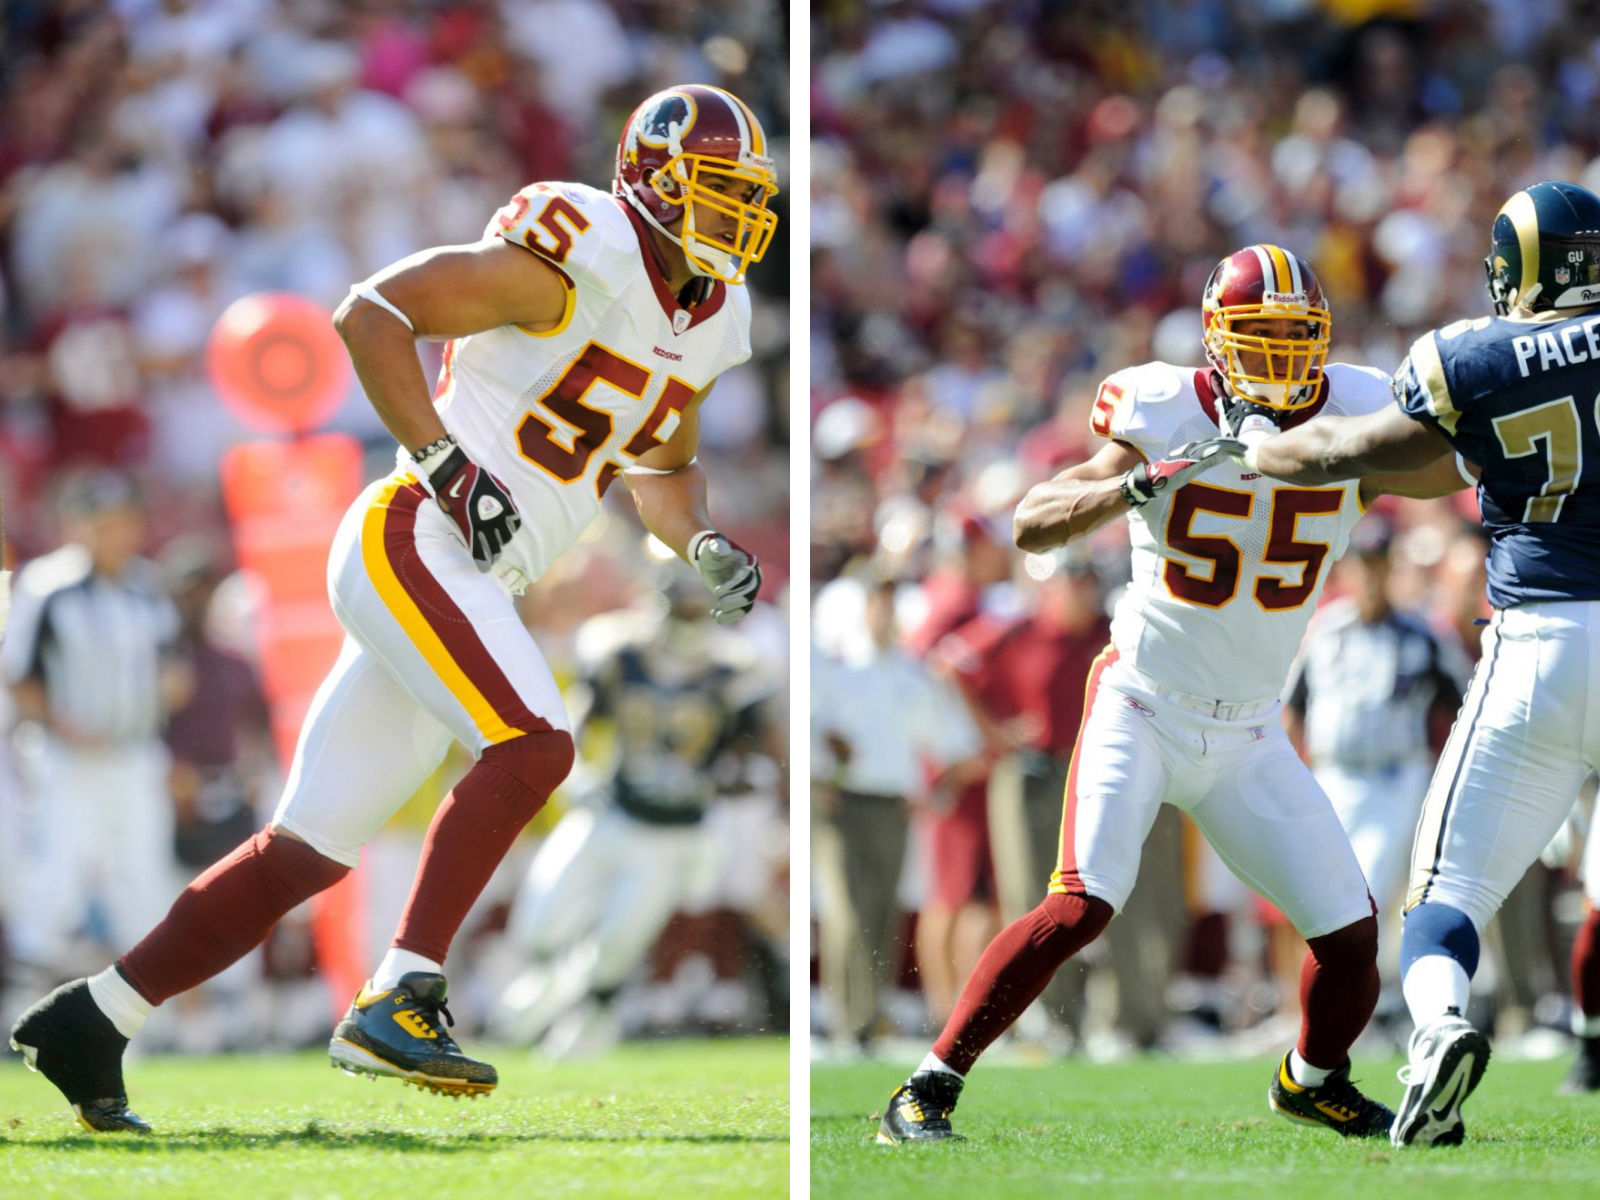 Jason Taylor Wearing Air Jordan III 3 Redskins PE Cleats (8)